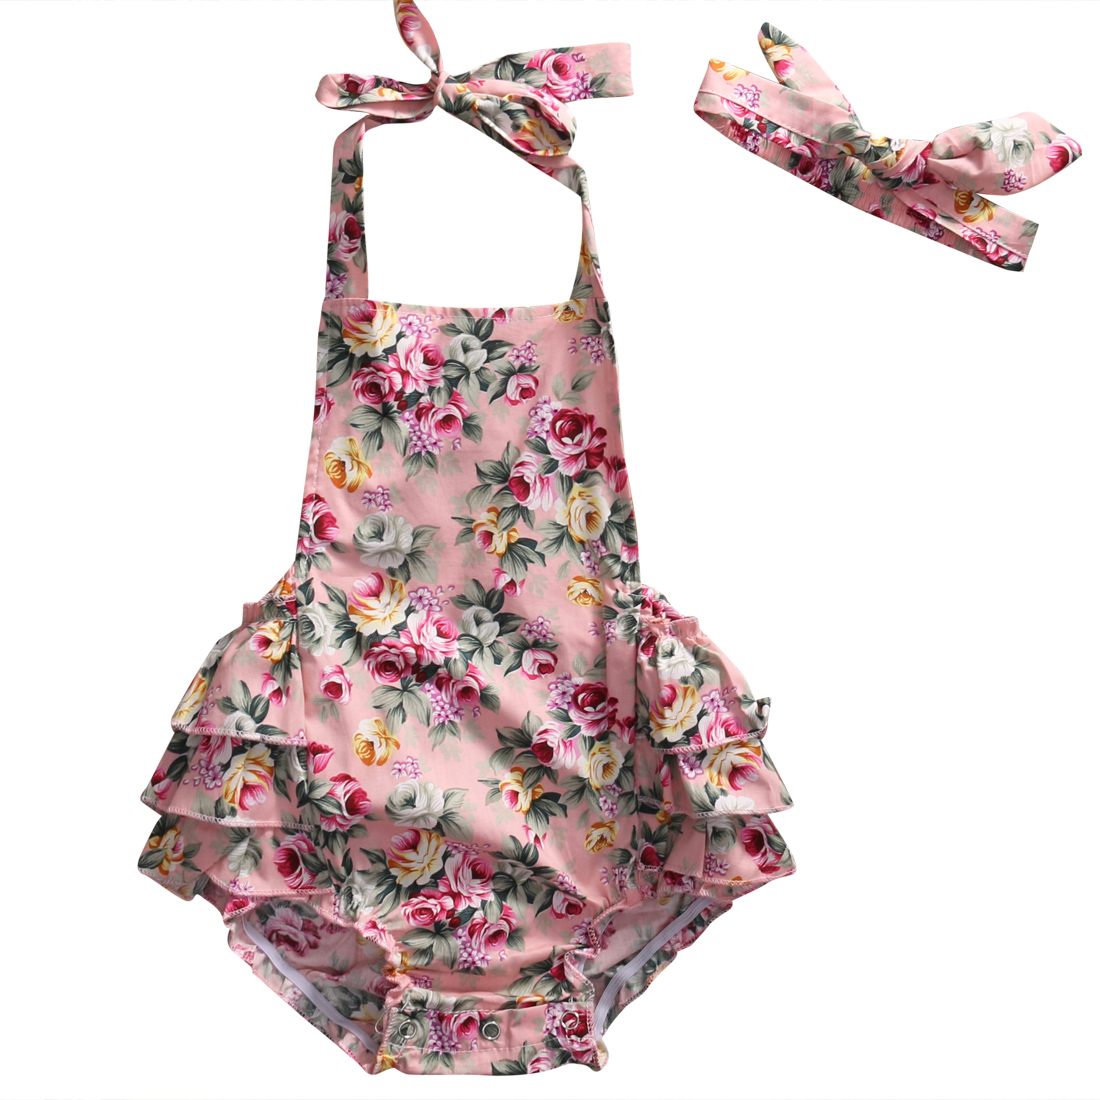 Backless Baby Girls Ruffled Rompers Floral Print Black Pink Romper Jumpsuit Headband Outfits Clothes Summer Children Clothing